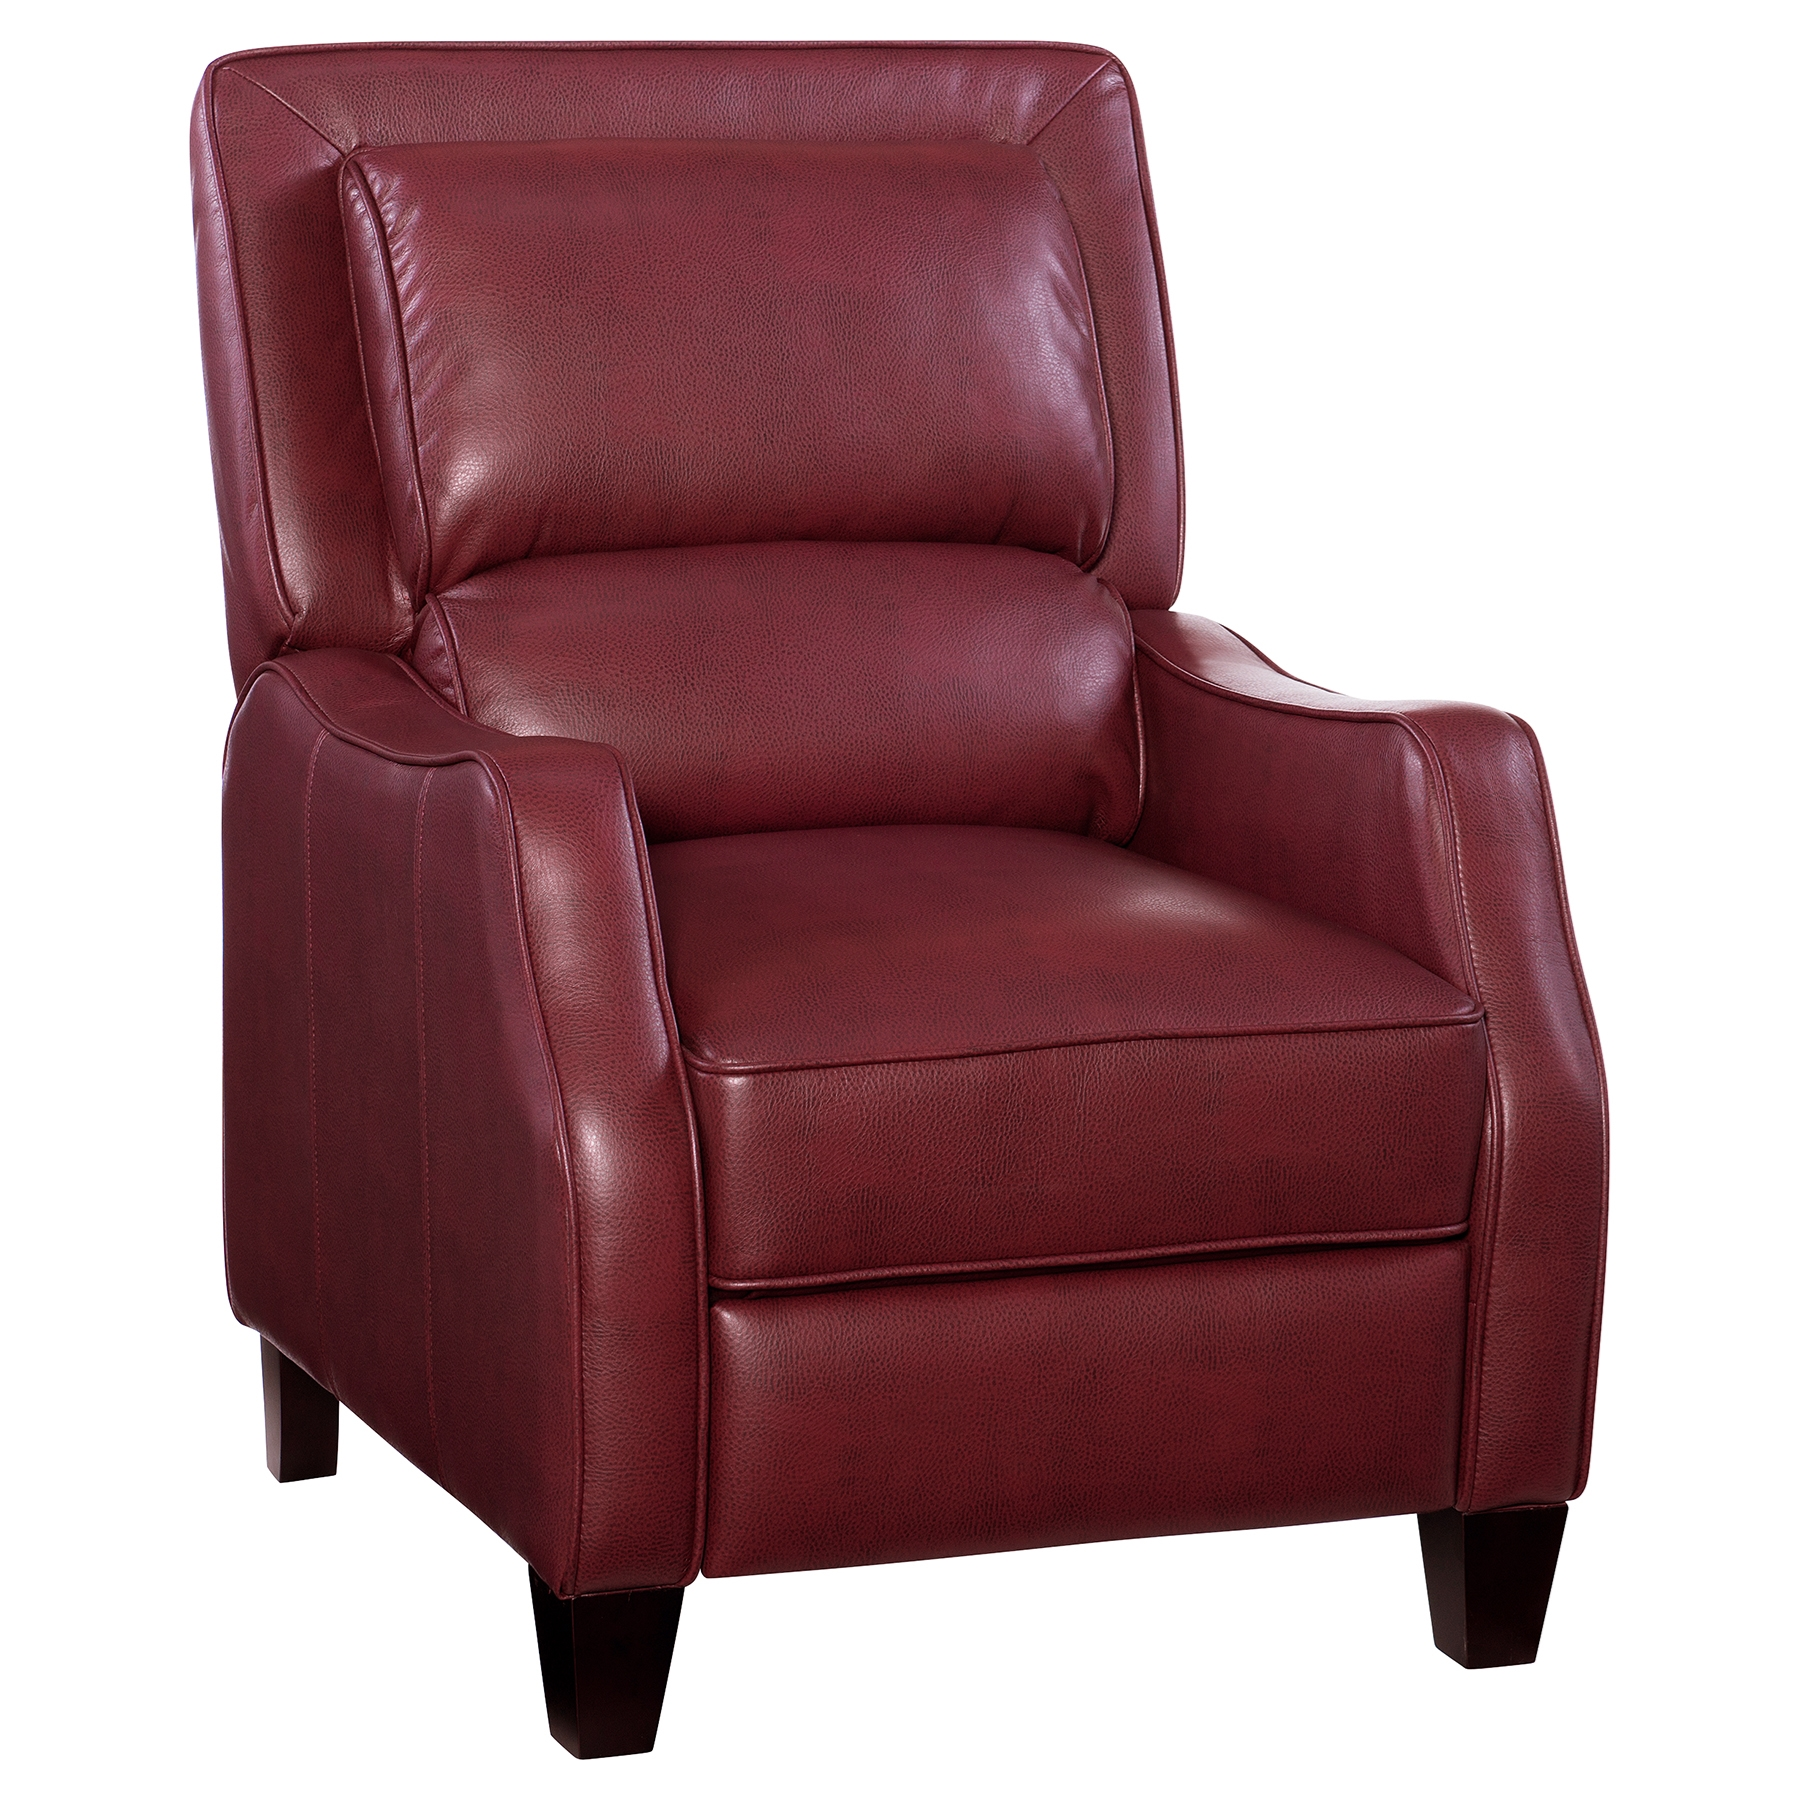 Duncan Leather Recliner   Belmont Red